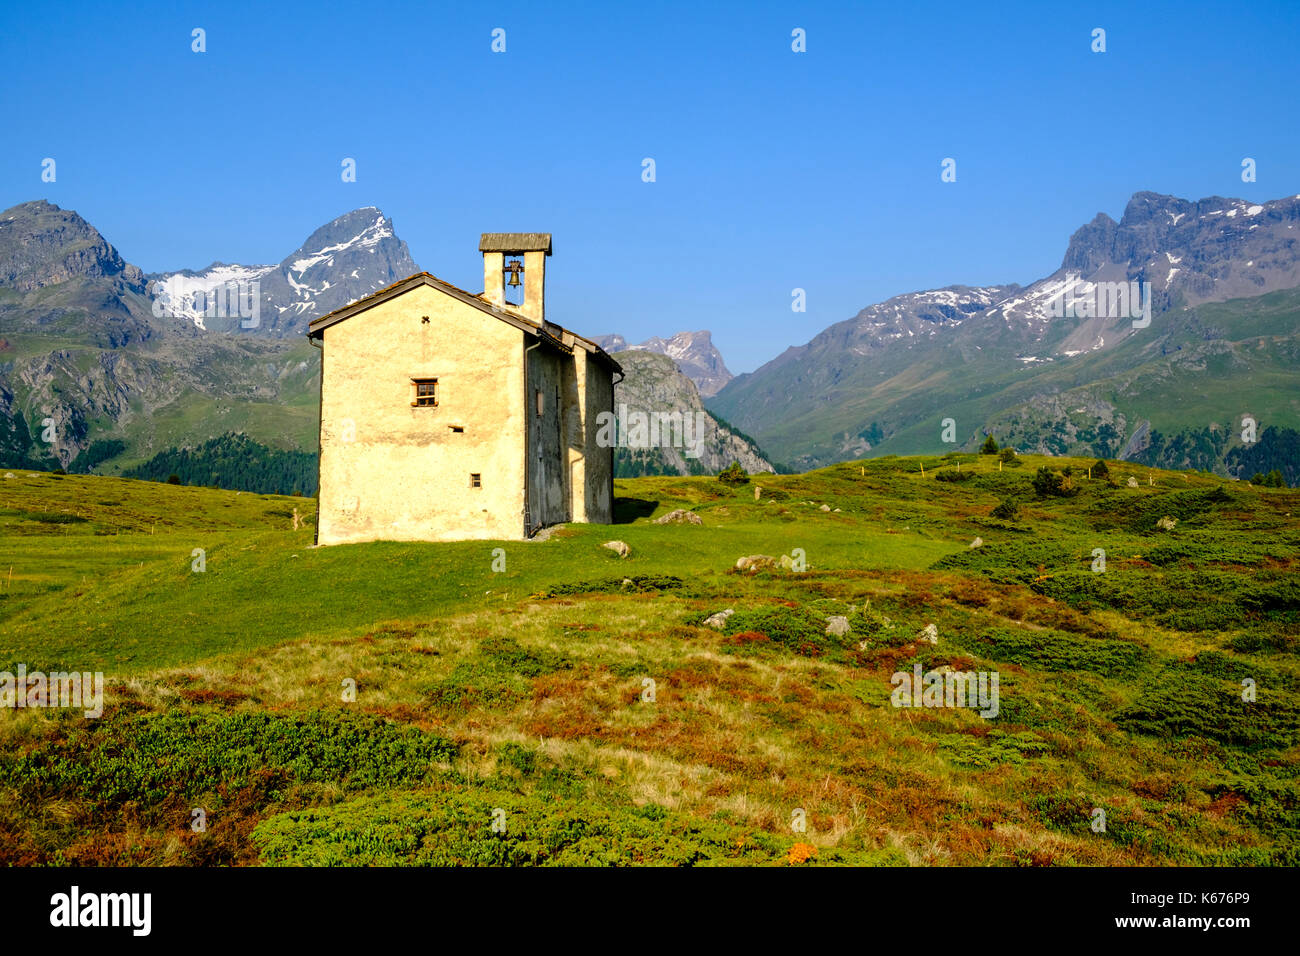 The Chapel Sun Roc, green meadows, bushes and mountain slopes at Alp Flix, high mountains in the distance - Stock Image